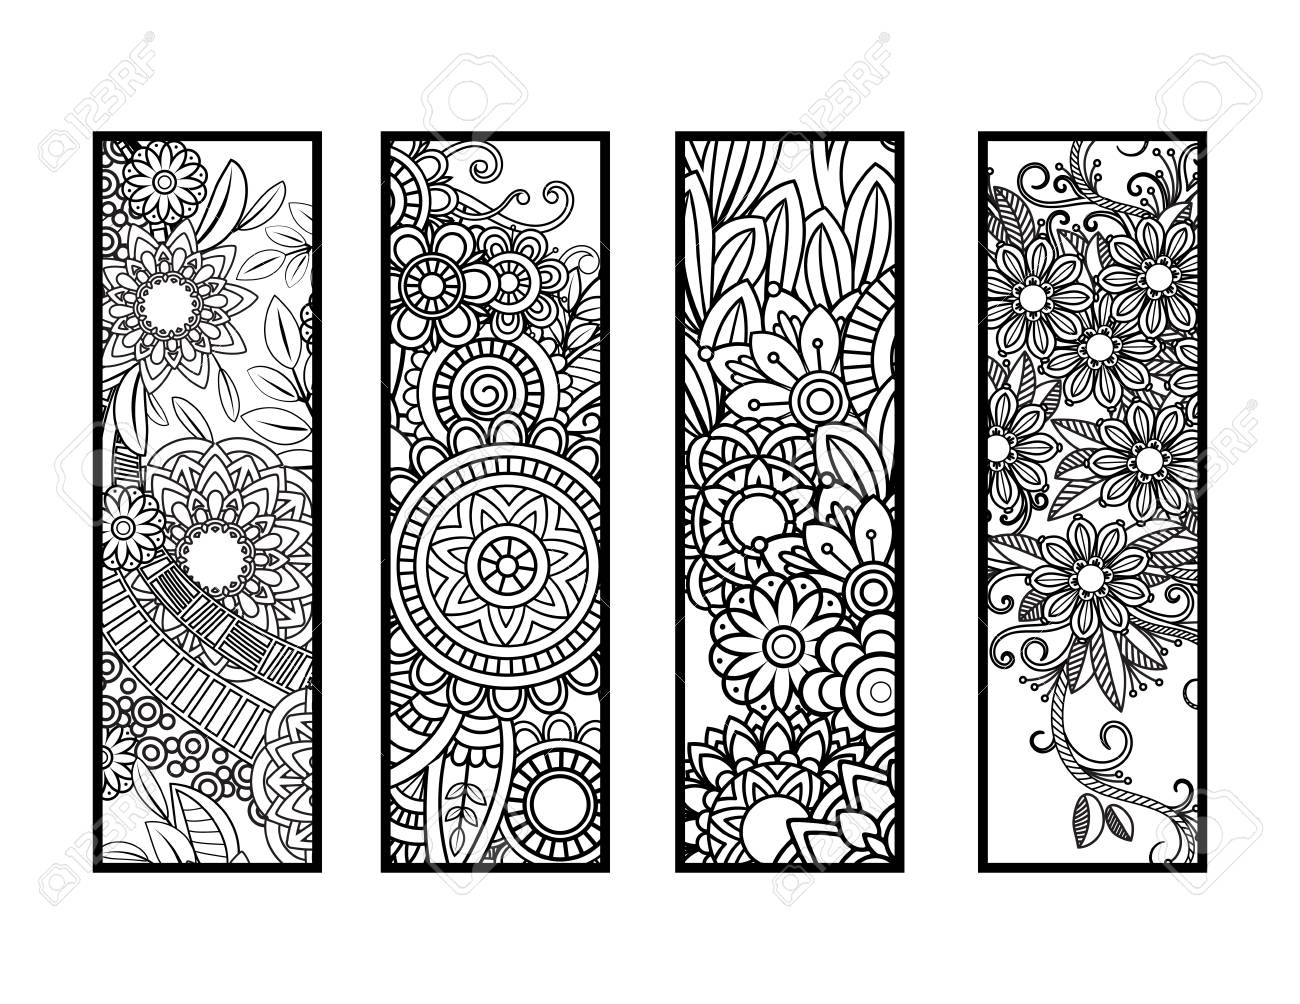 Coloring Bookmarks Set Royalty Free Cliparts, Vectors, And Stock ...